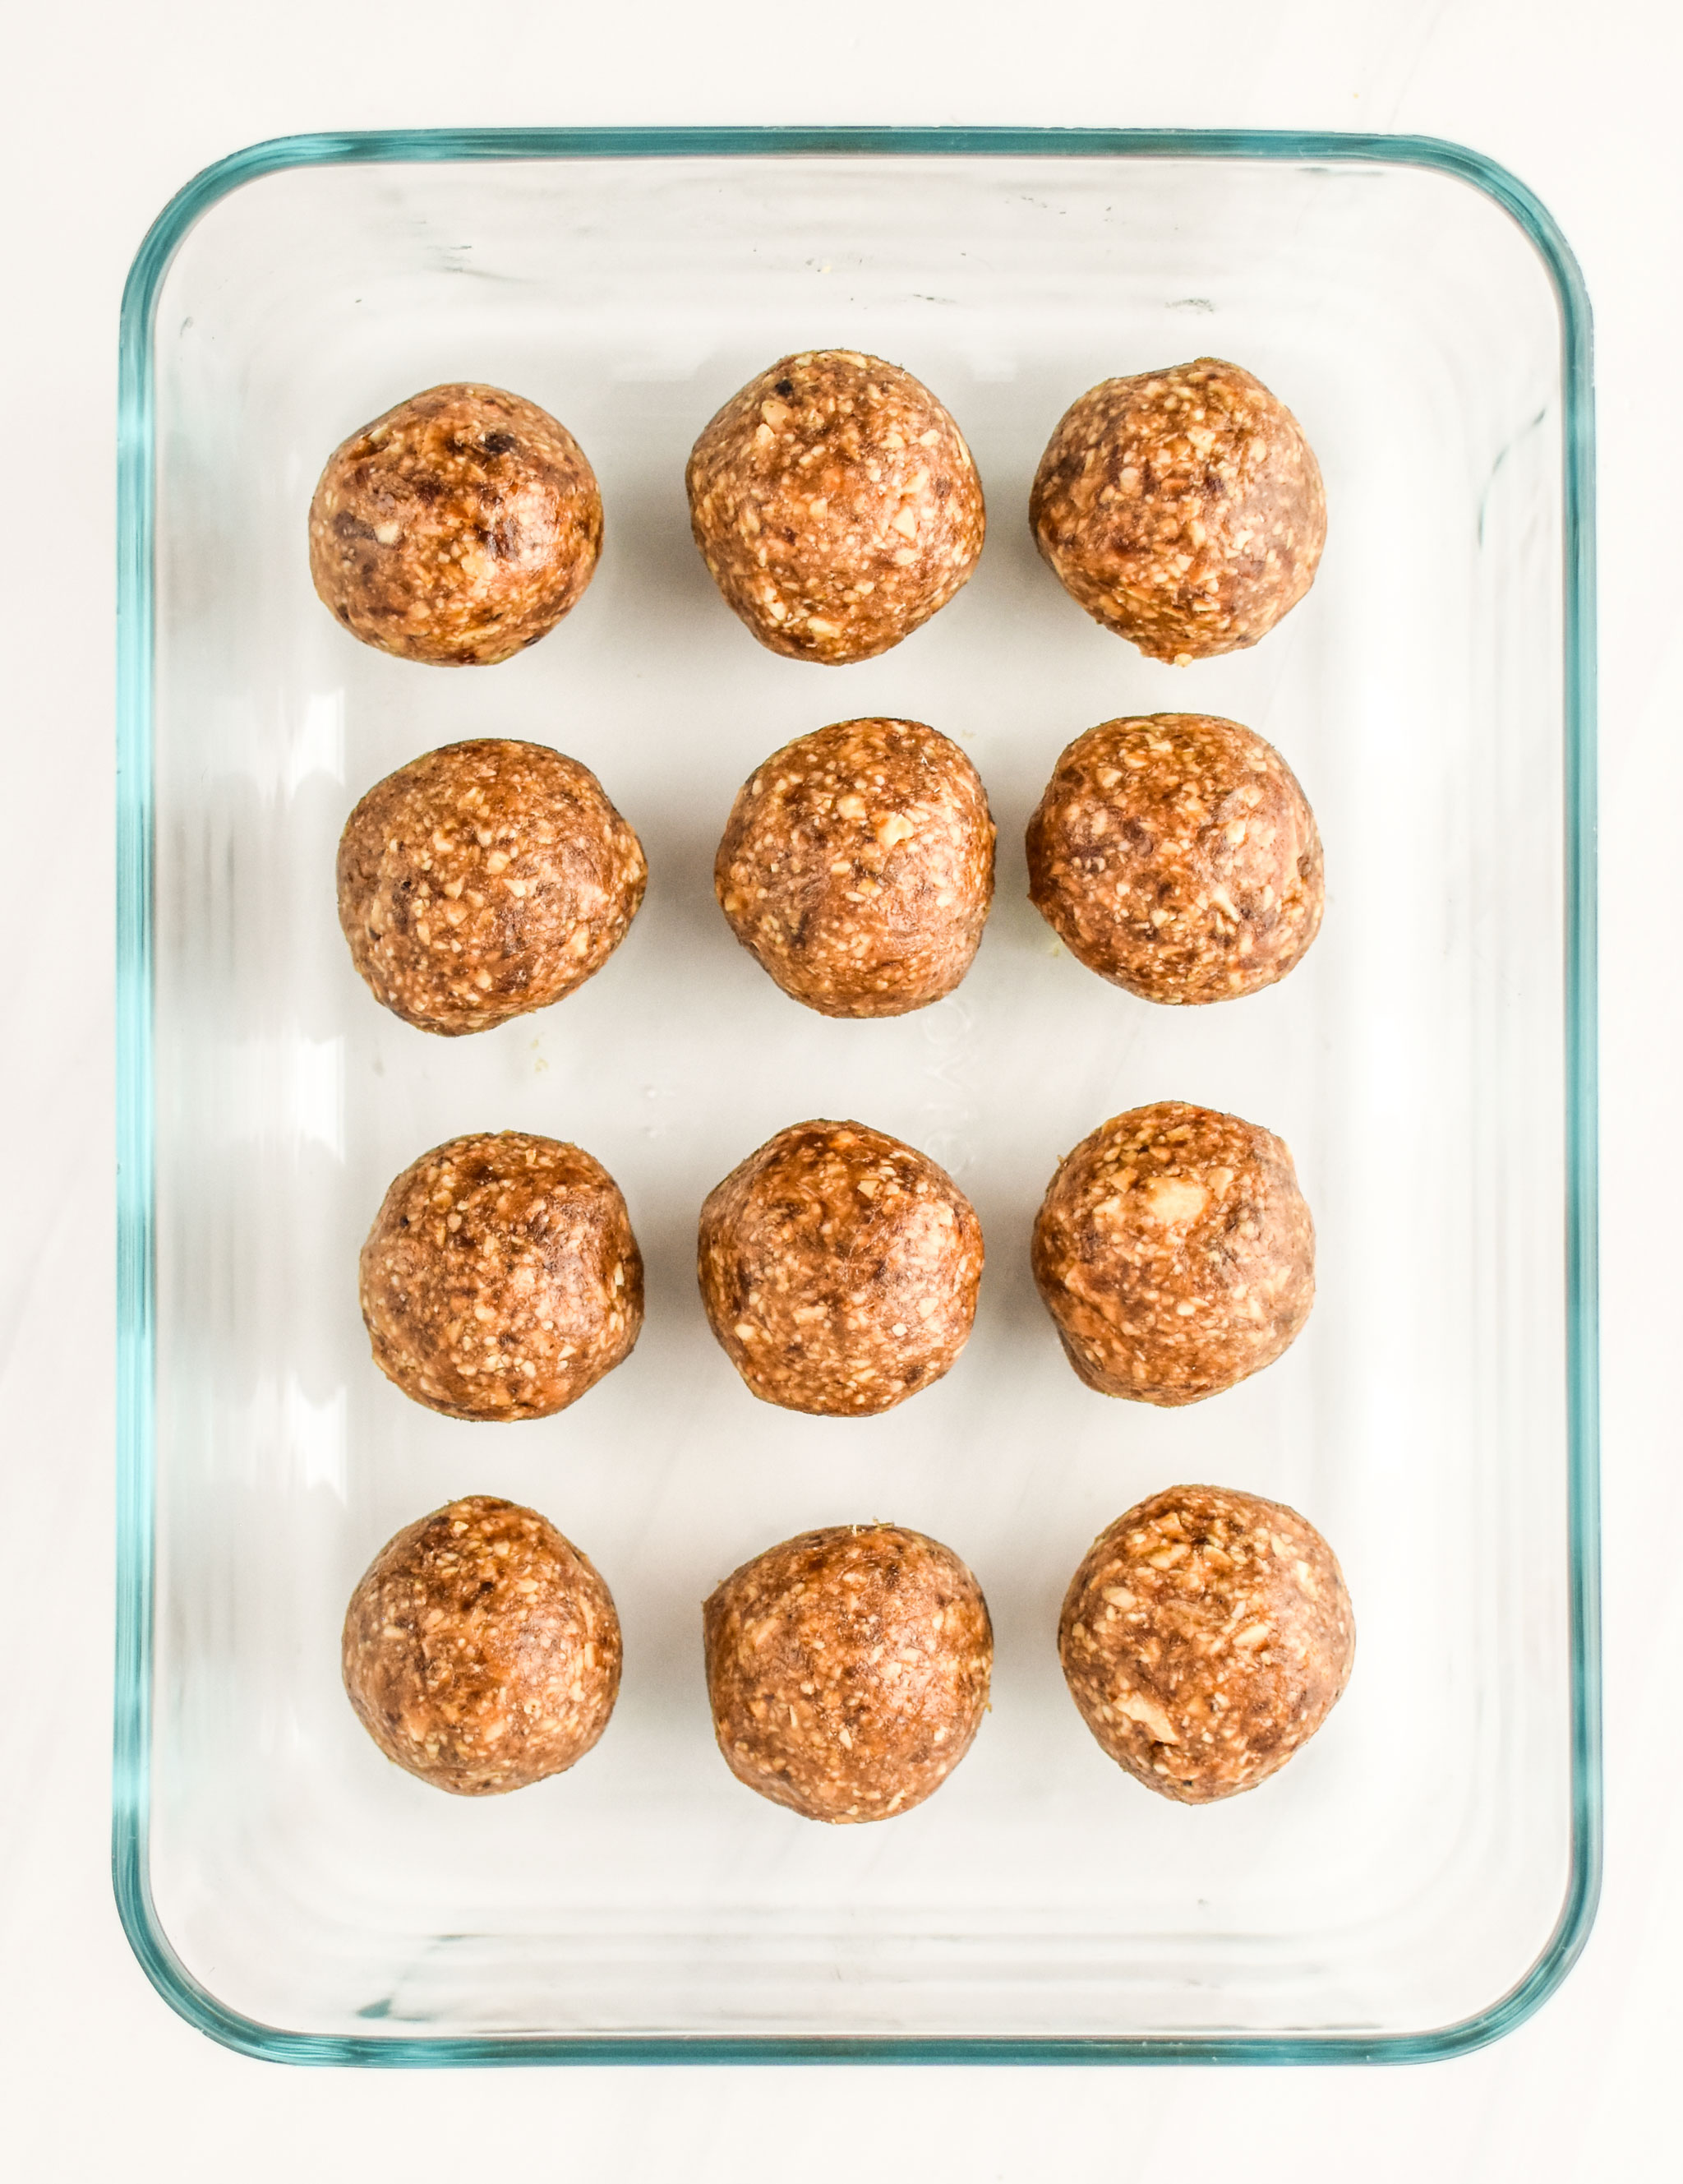 Peanut butter cookie balls stashed in a Pyrex container for storage.